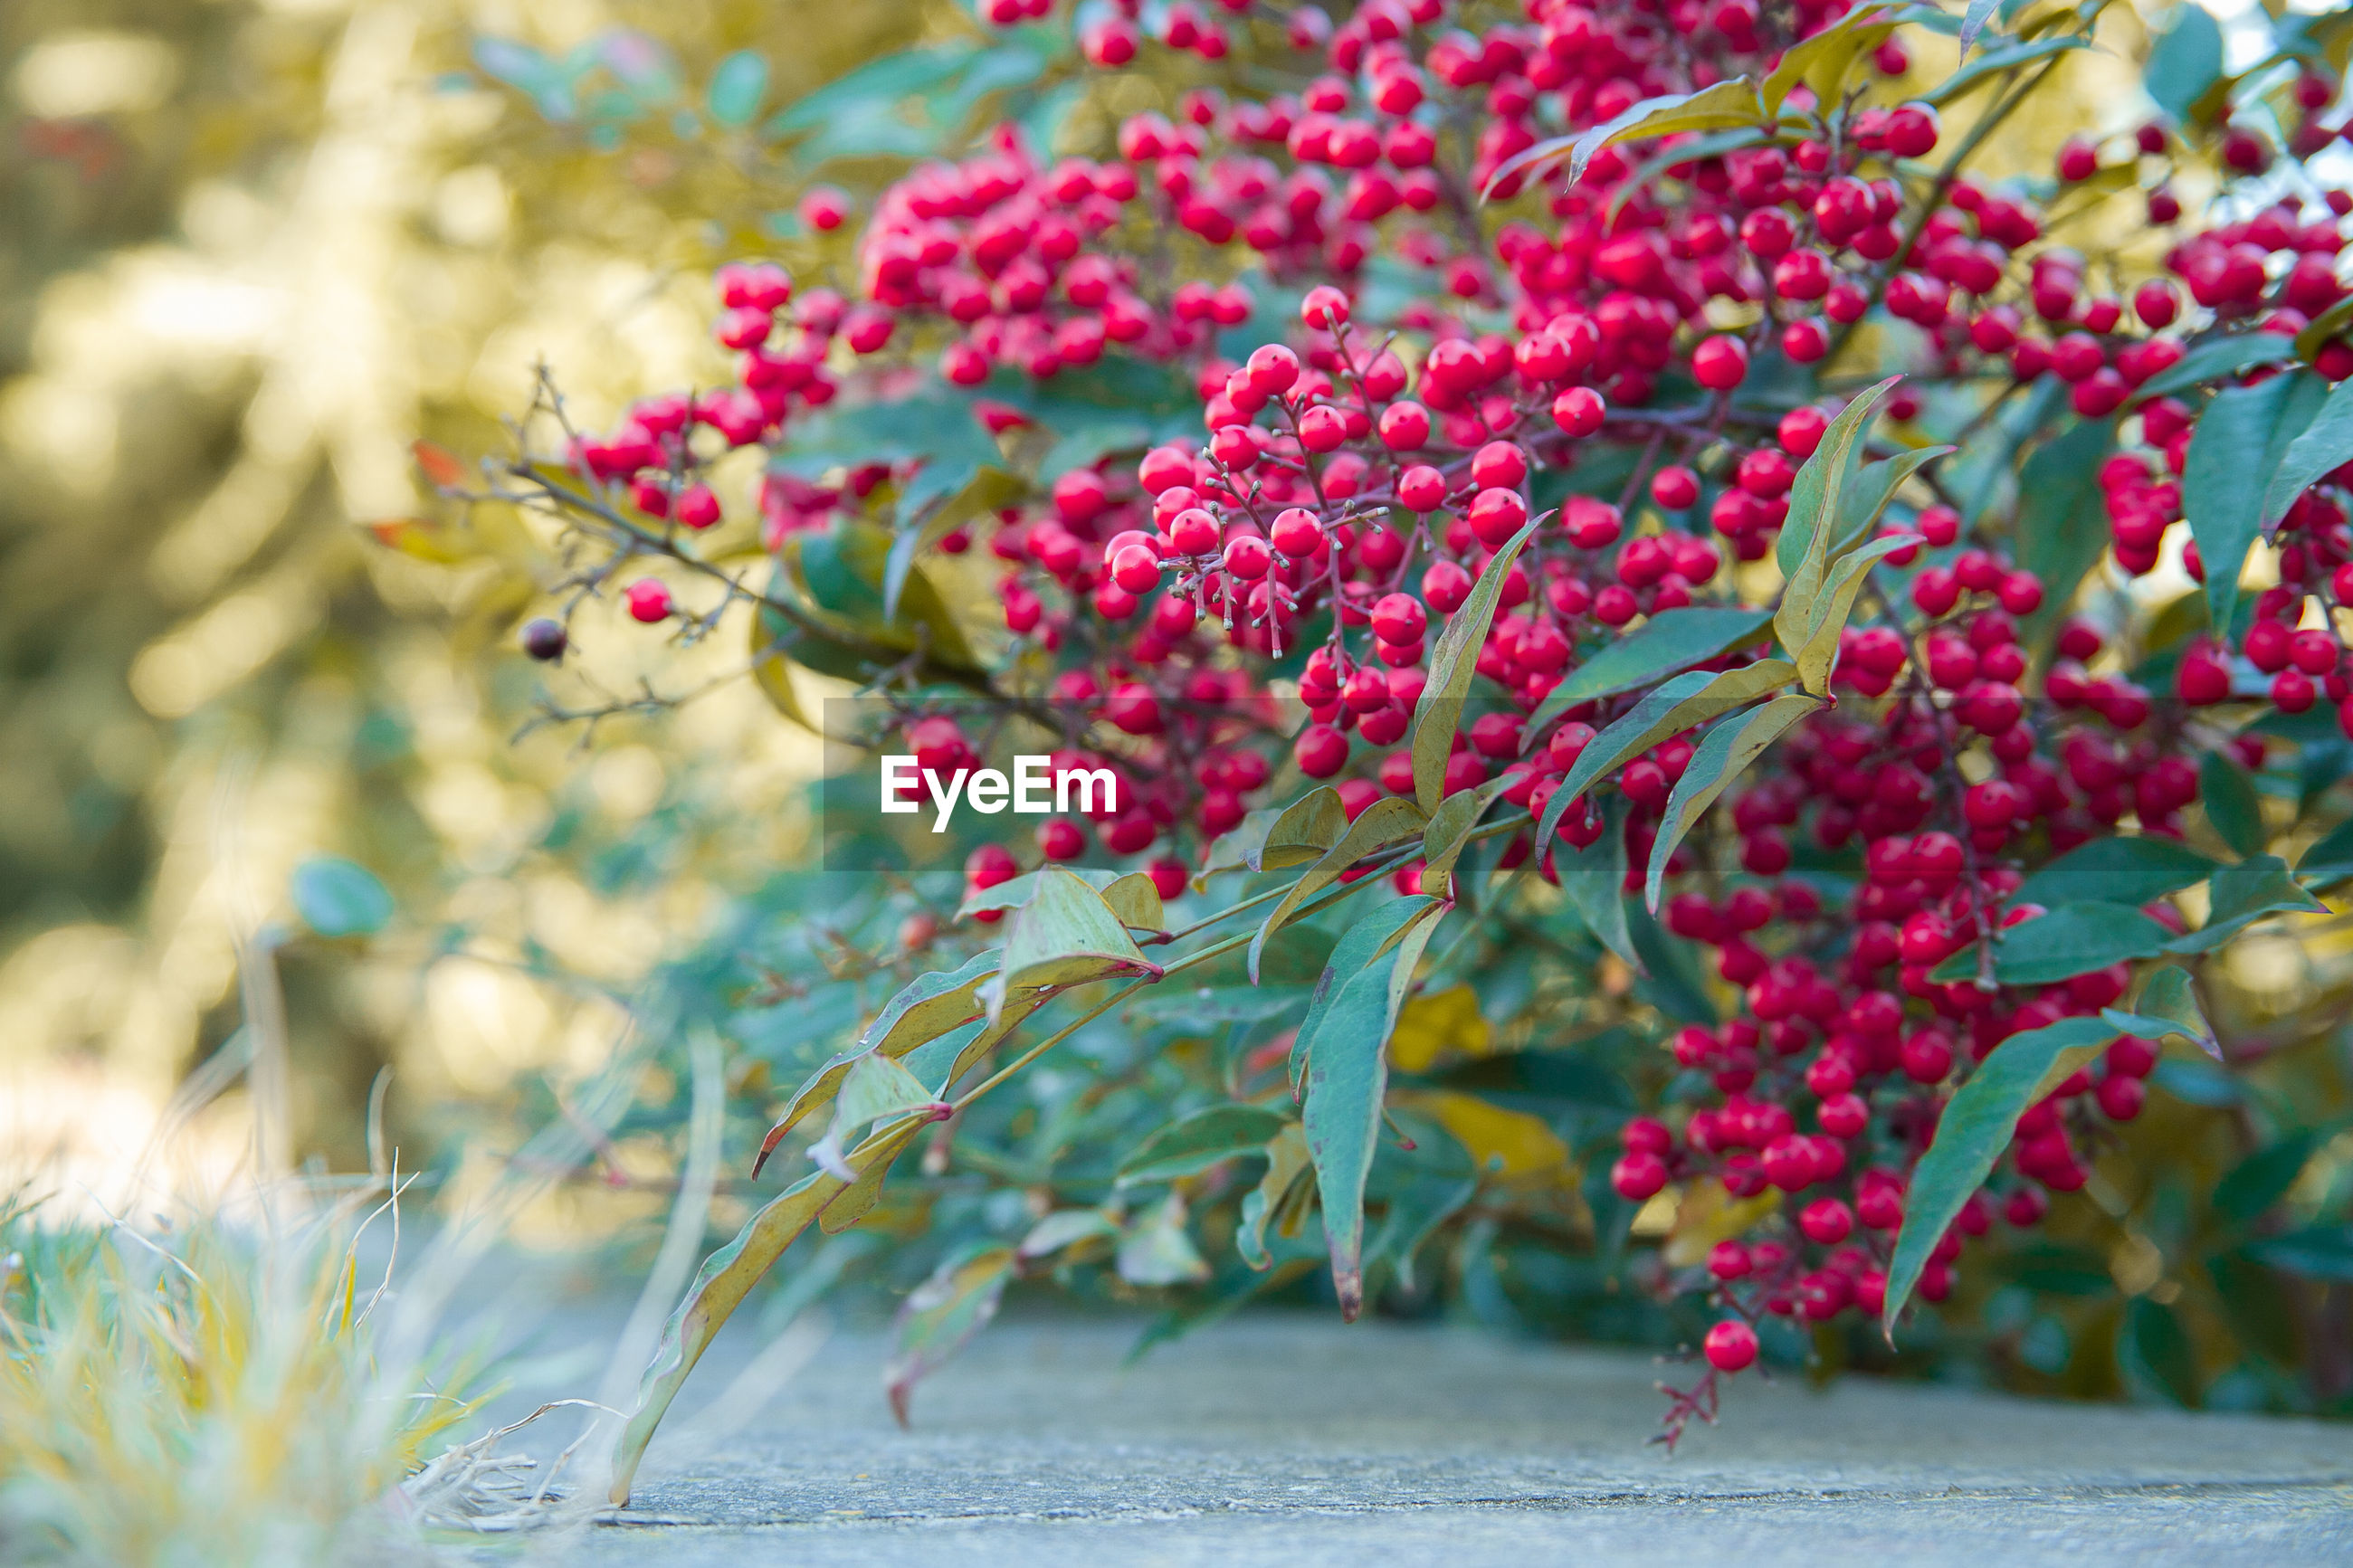 CLOSE-UP OF RED BERRIES GROWING ON PLANT